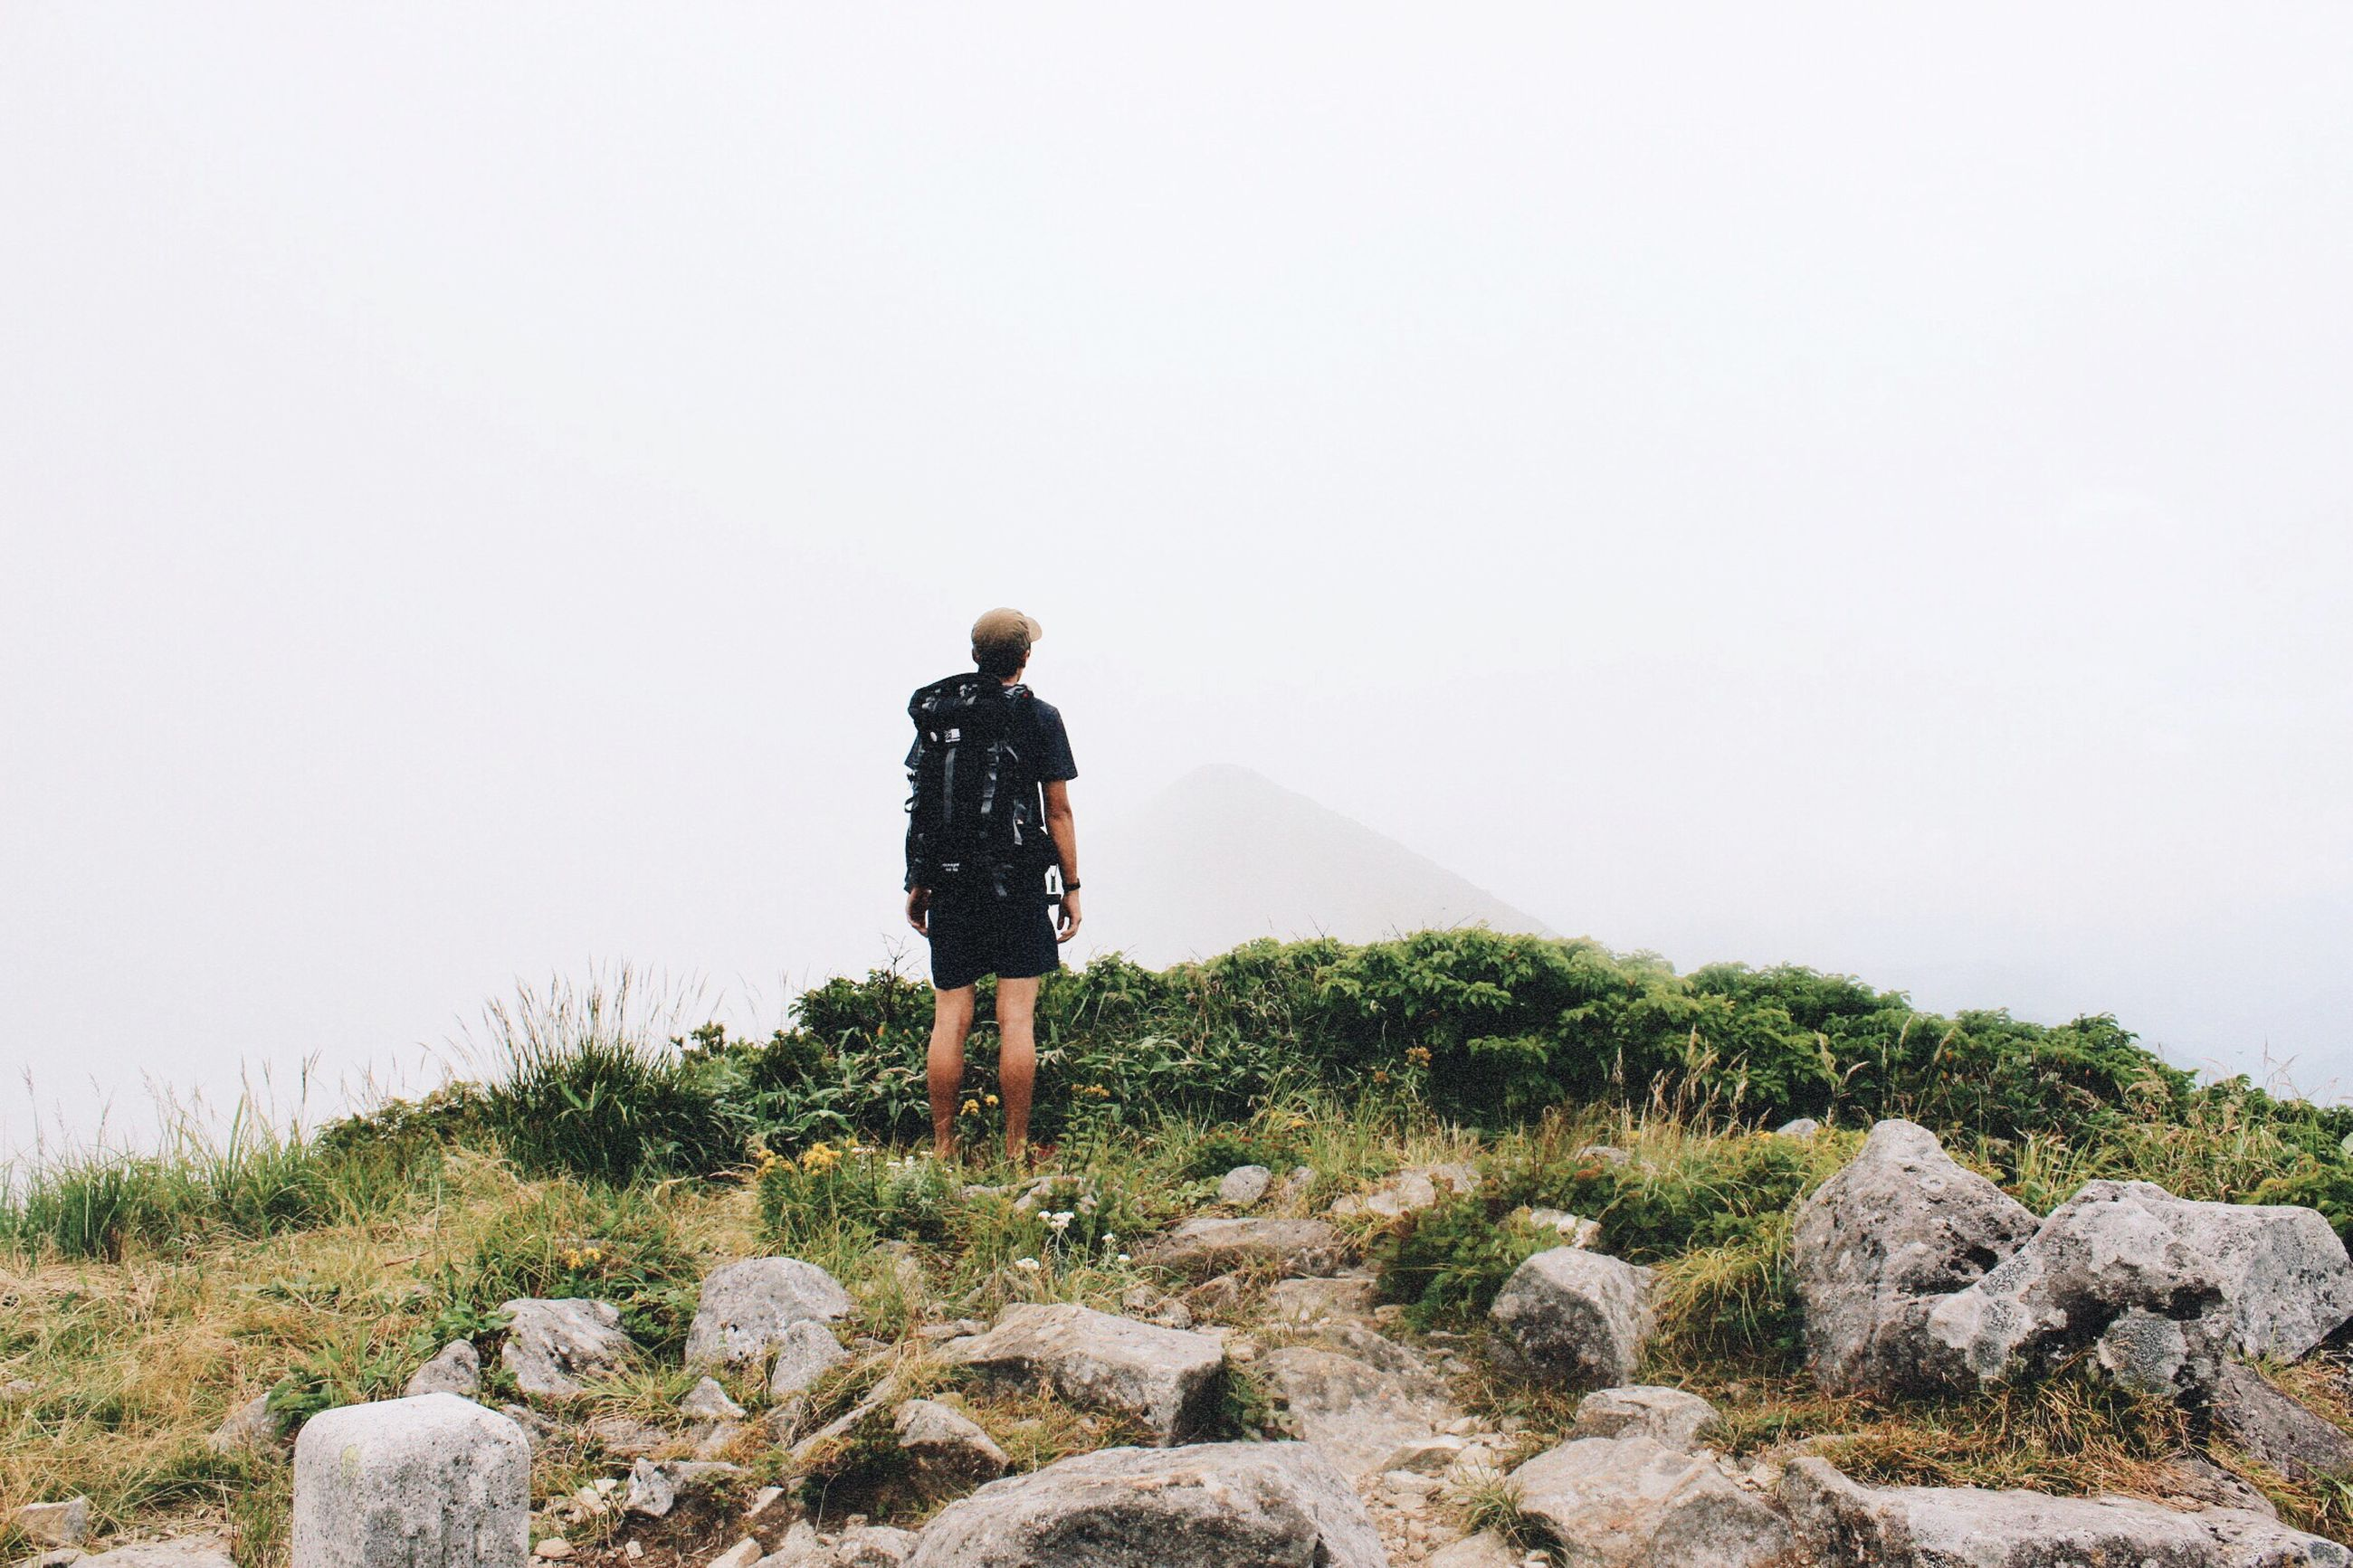 lifestyles, full length, leisure activity, rear view, standing, clear sky, casual clothing, copy space, rock - object, tranquility, men, tranquil scene, nature, landscape, beauty in nature, getting away from it all, person, scenics